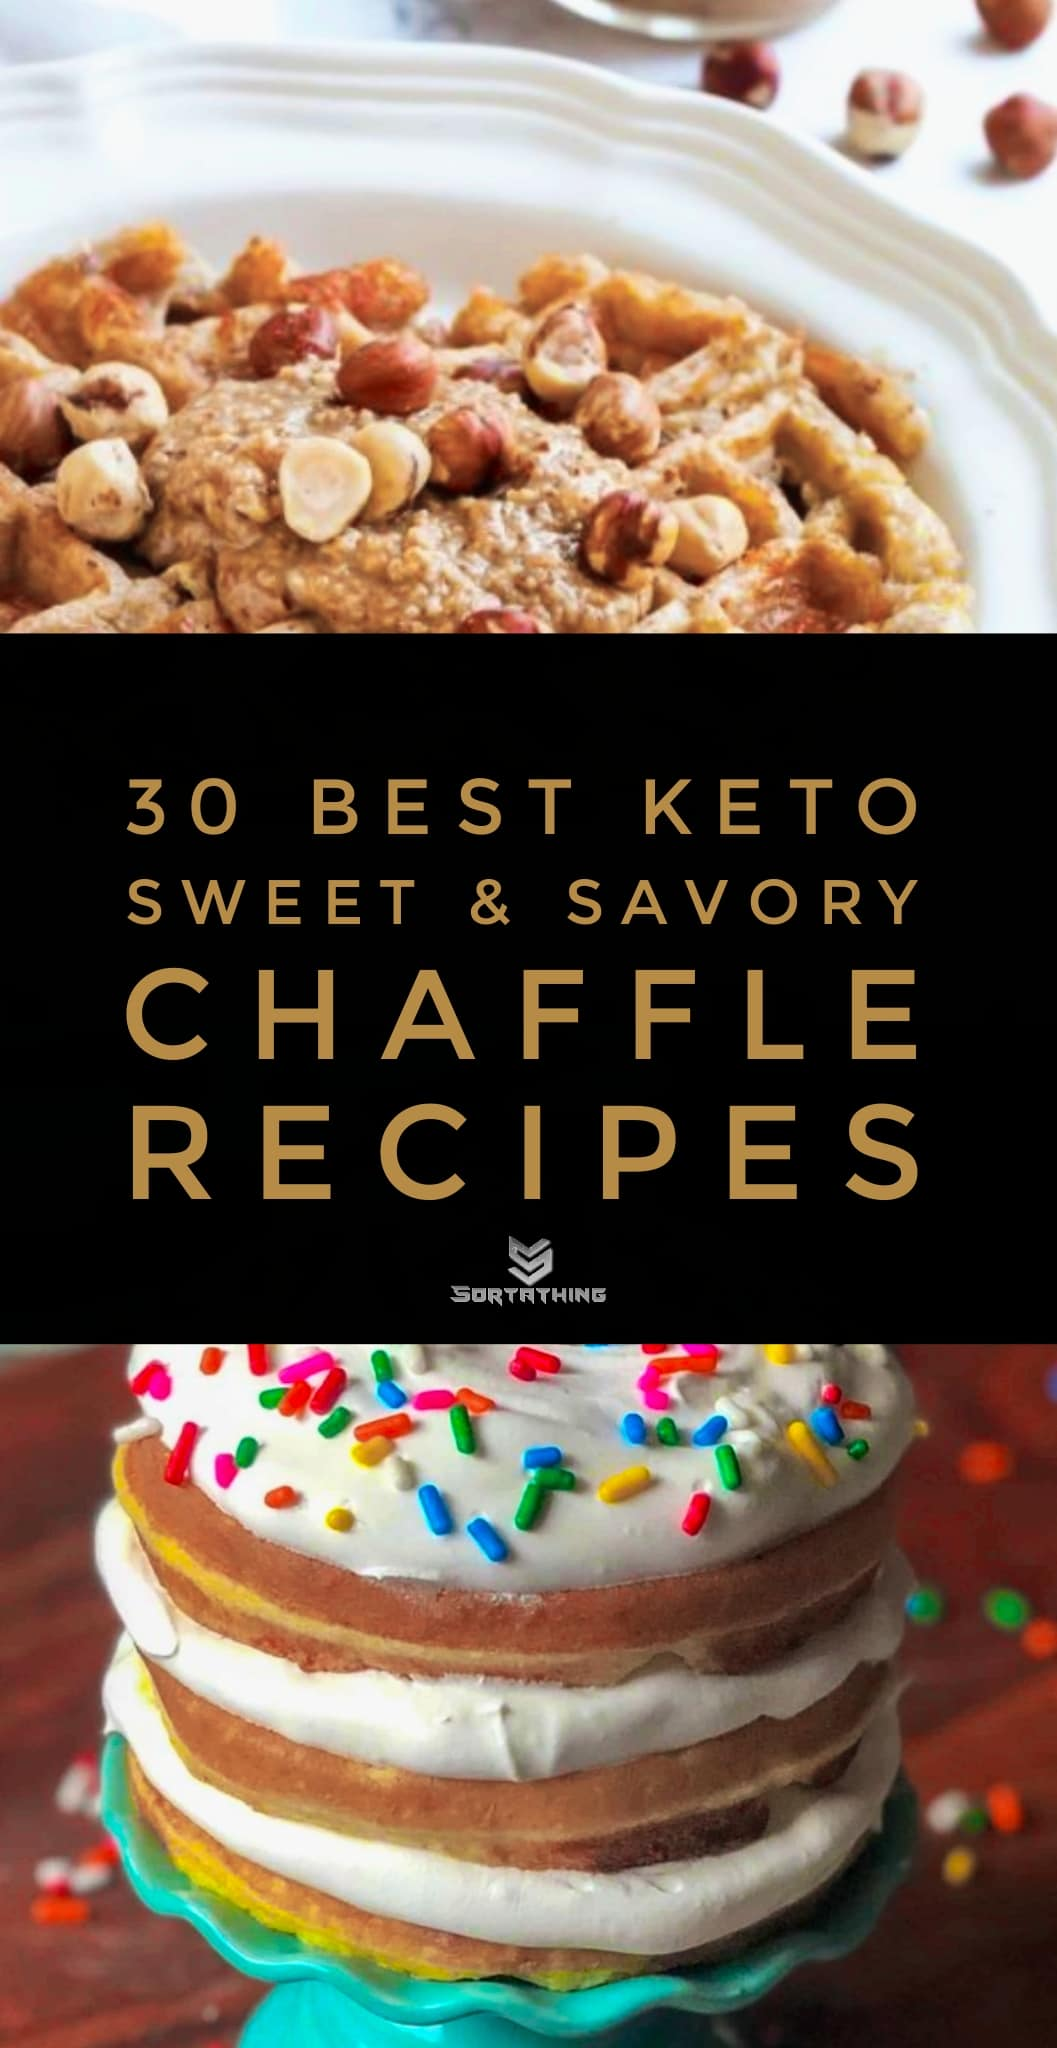 Peanut Butter Chaffle Recipe and Keto Birthday Cake Chaffle Recipe